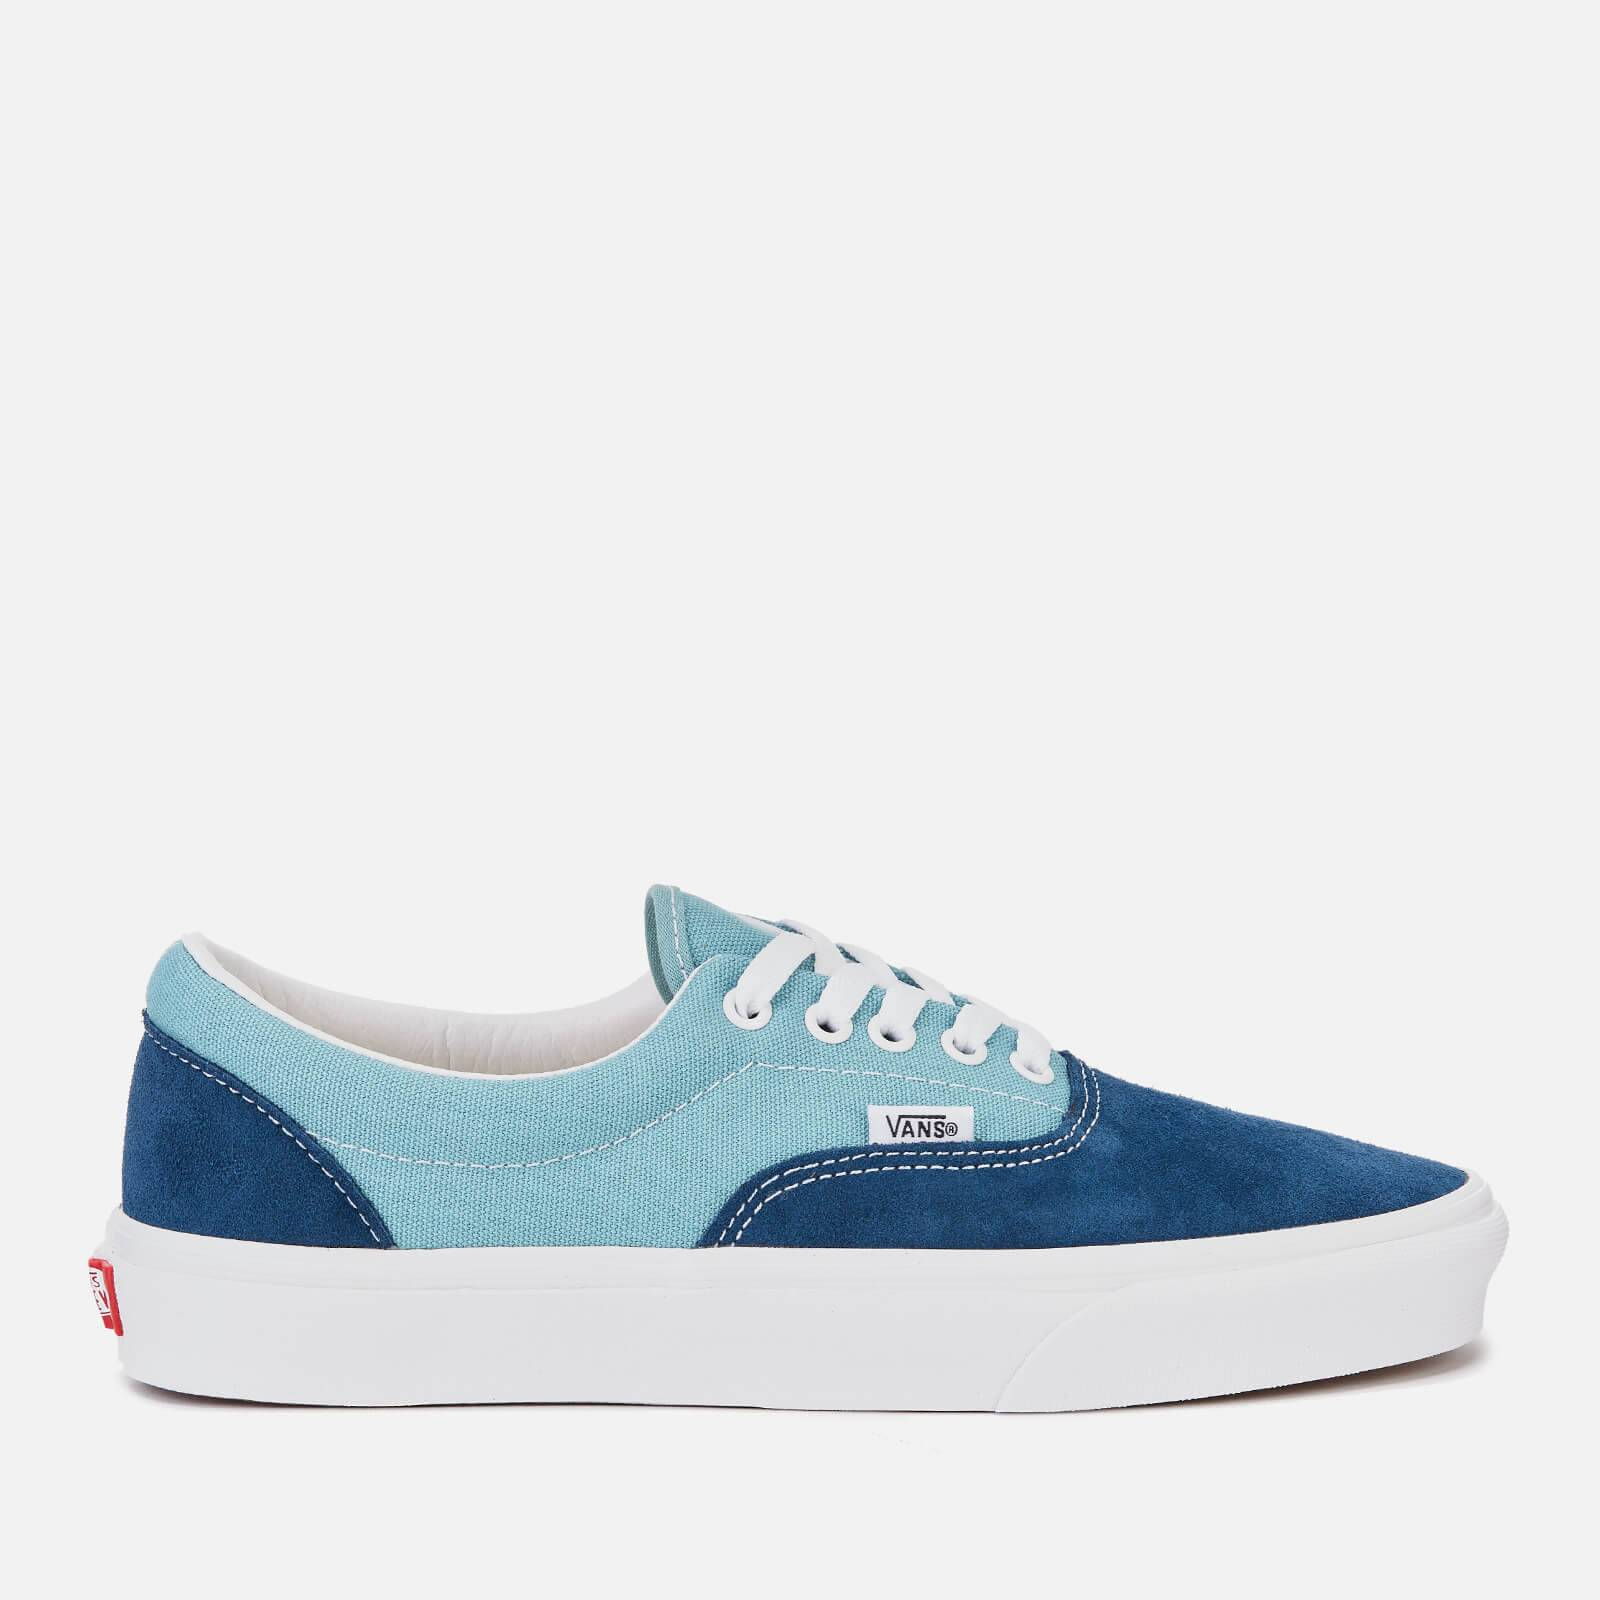 Vans Men's Era Retro Sport Trainers - Gibraltar Sea/Cameo Blue - UK 9